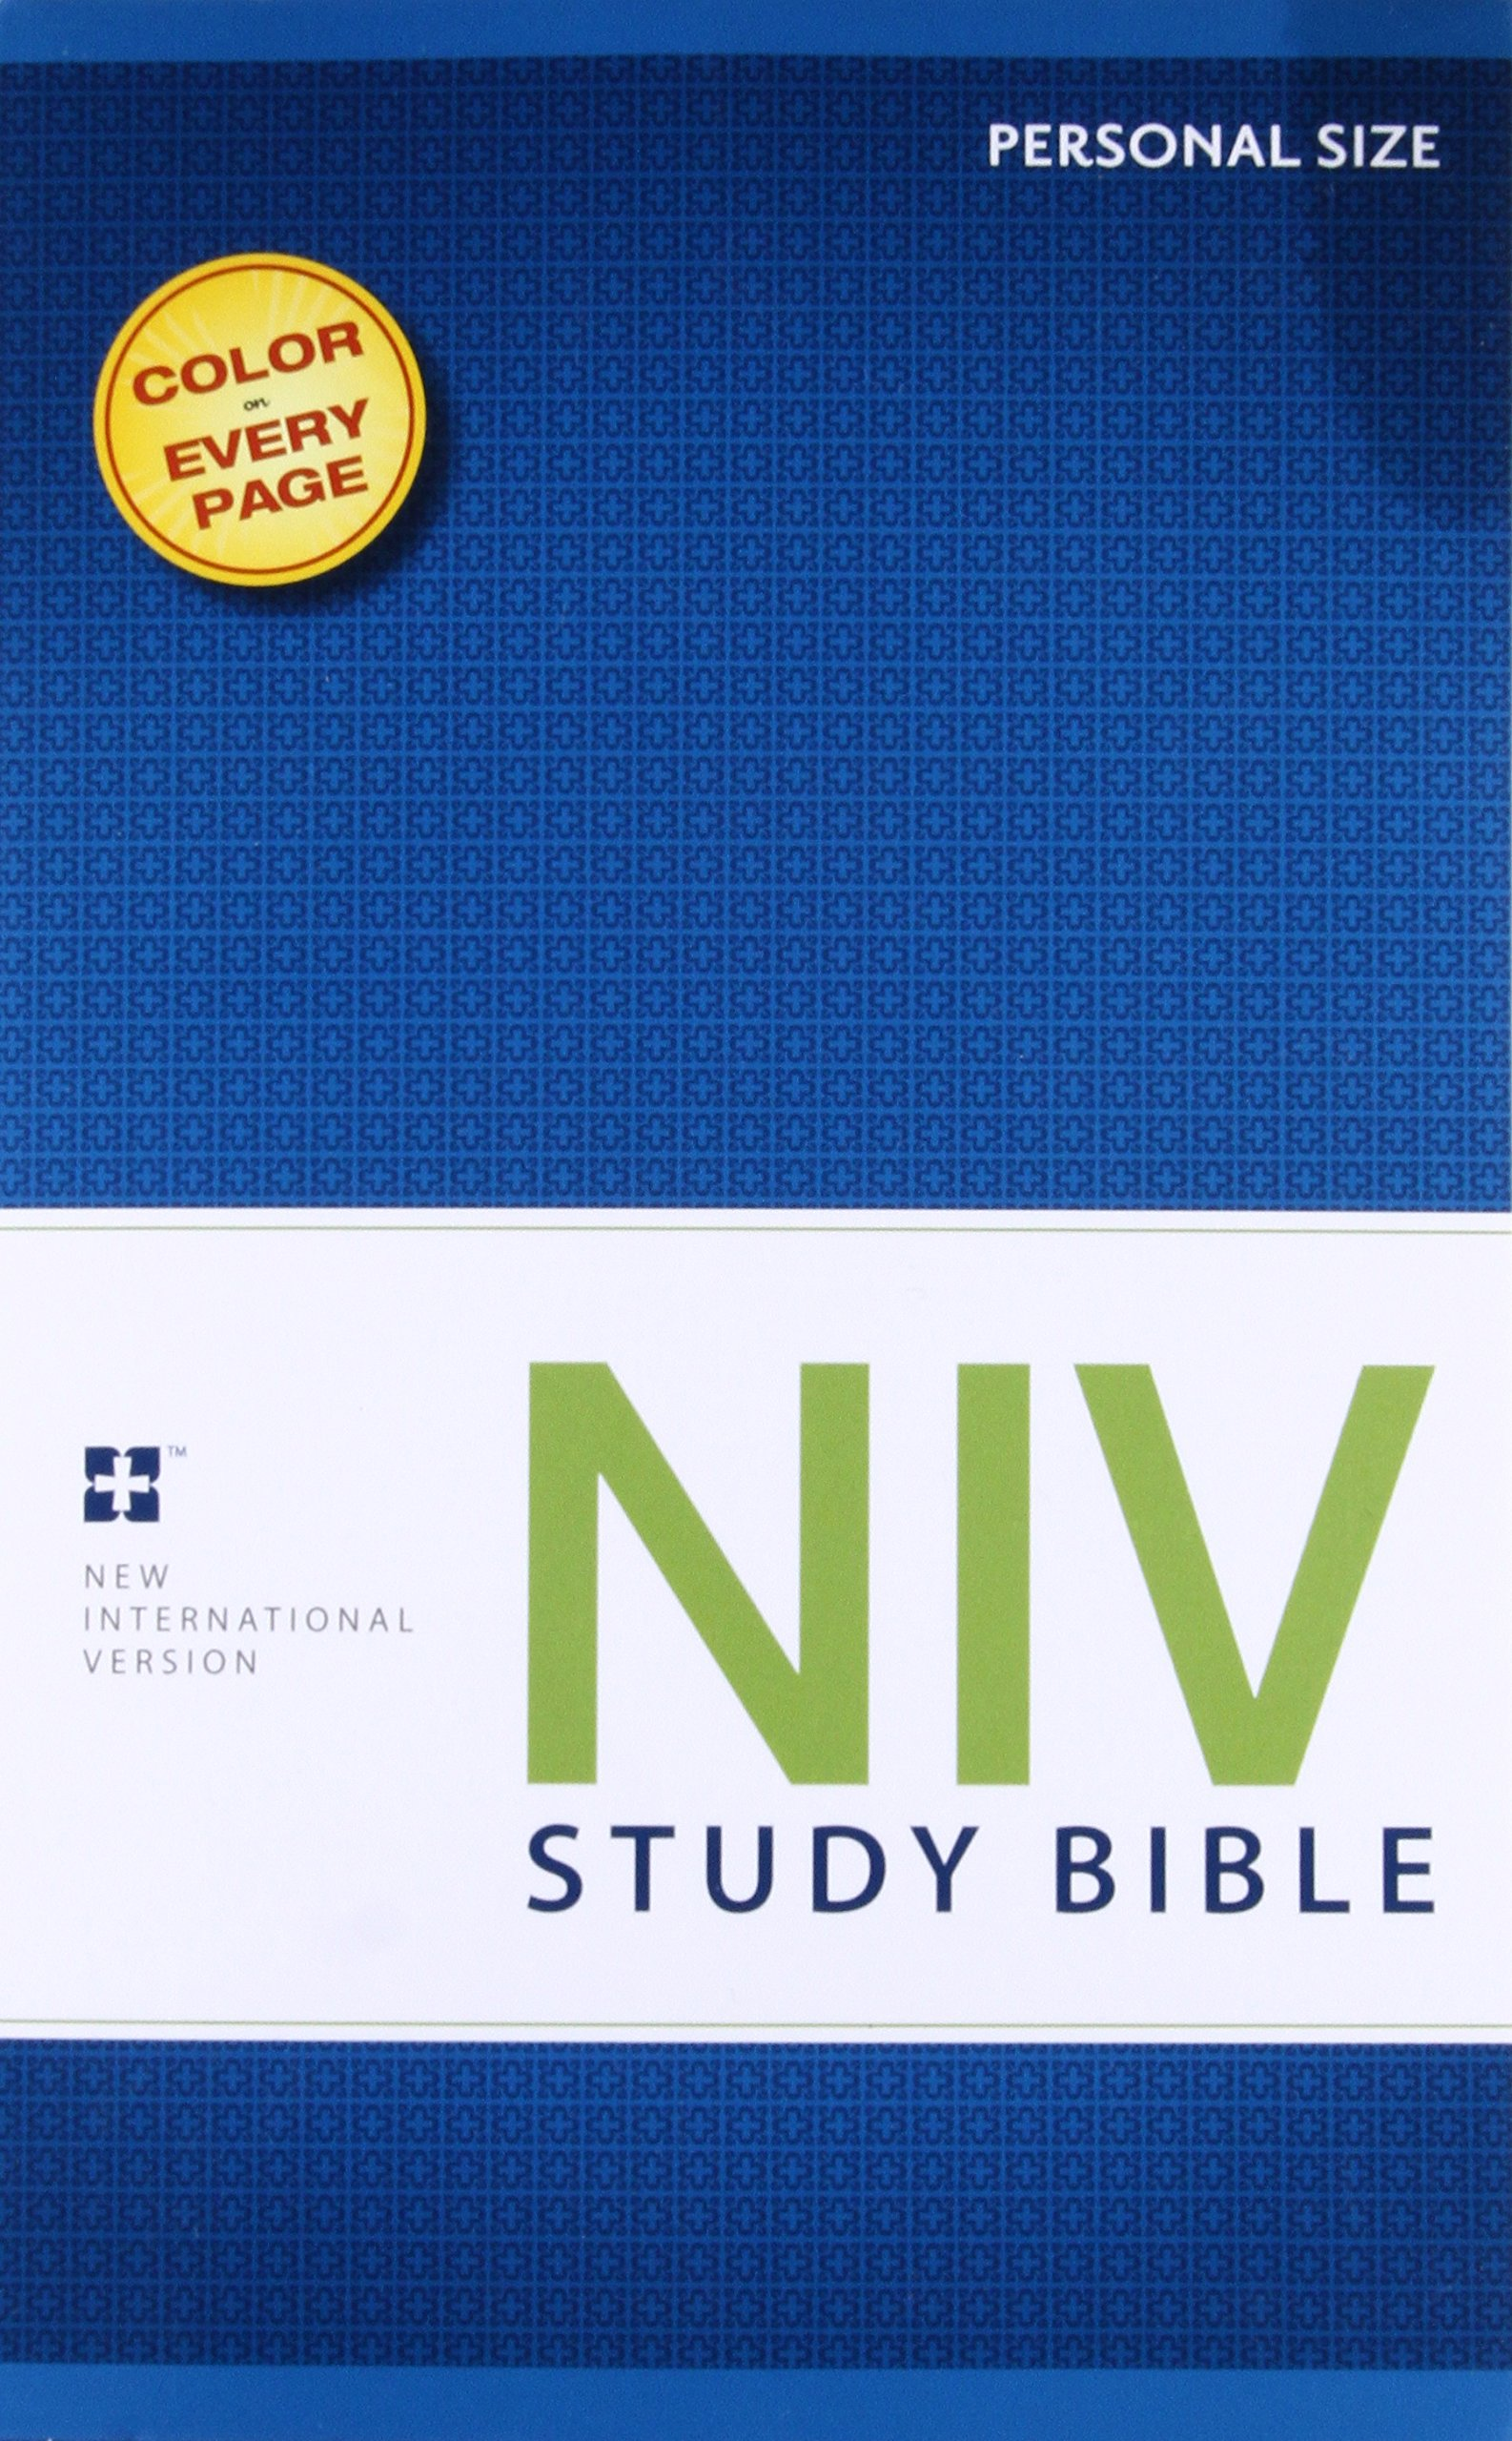 NIV Study Bible, Personal Size, Paperback, Red Letter